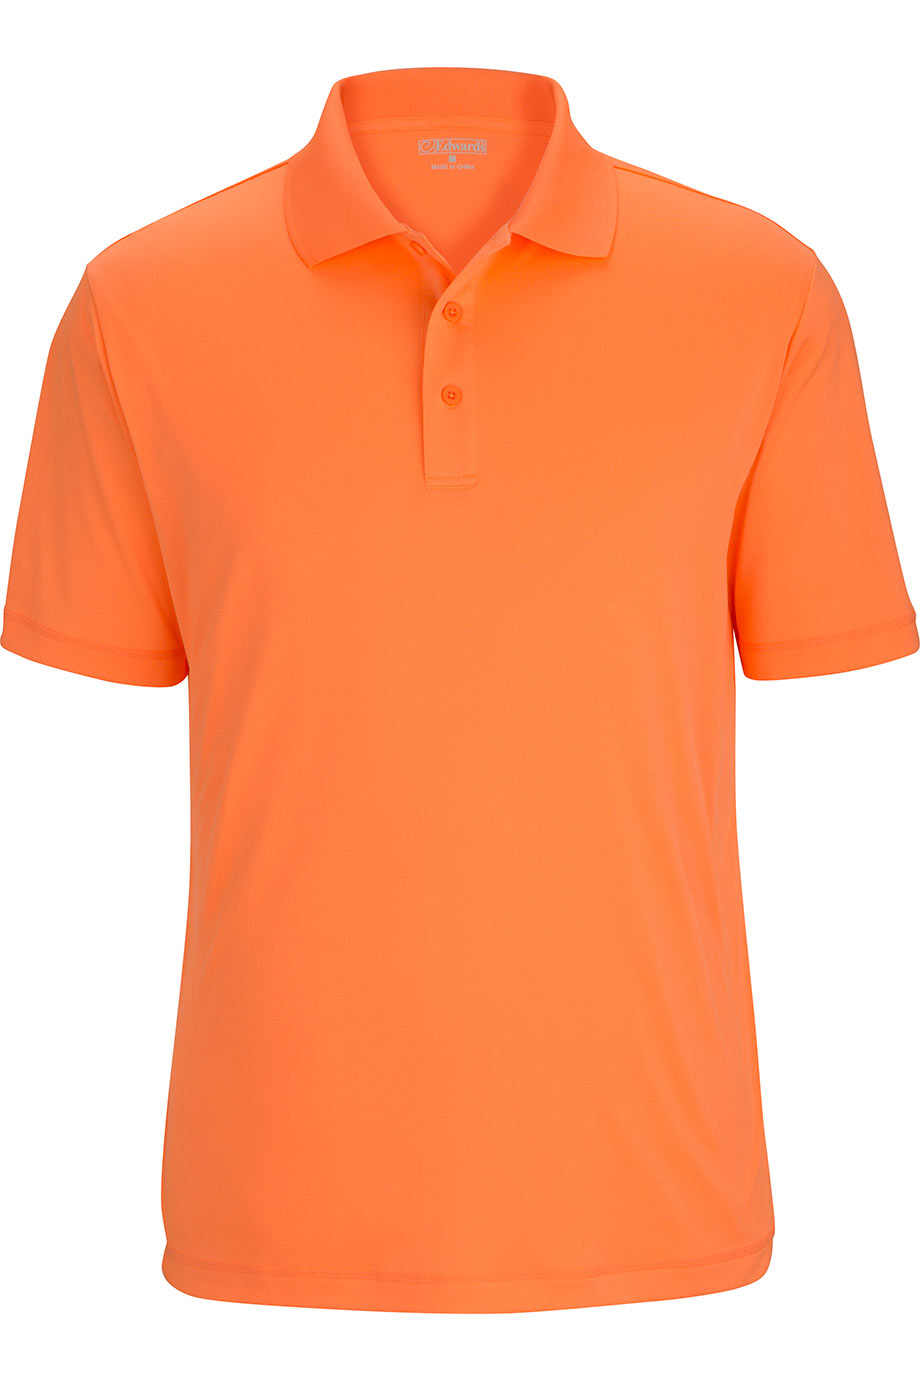 High Visibility Orange Edwards Mens Durable Performance Polo